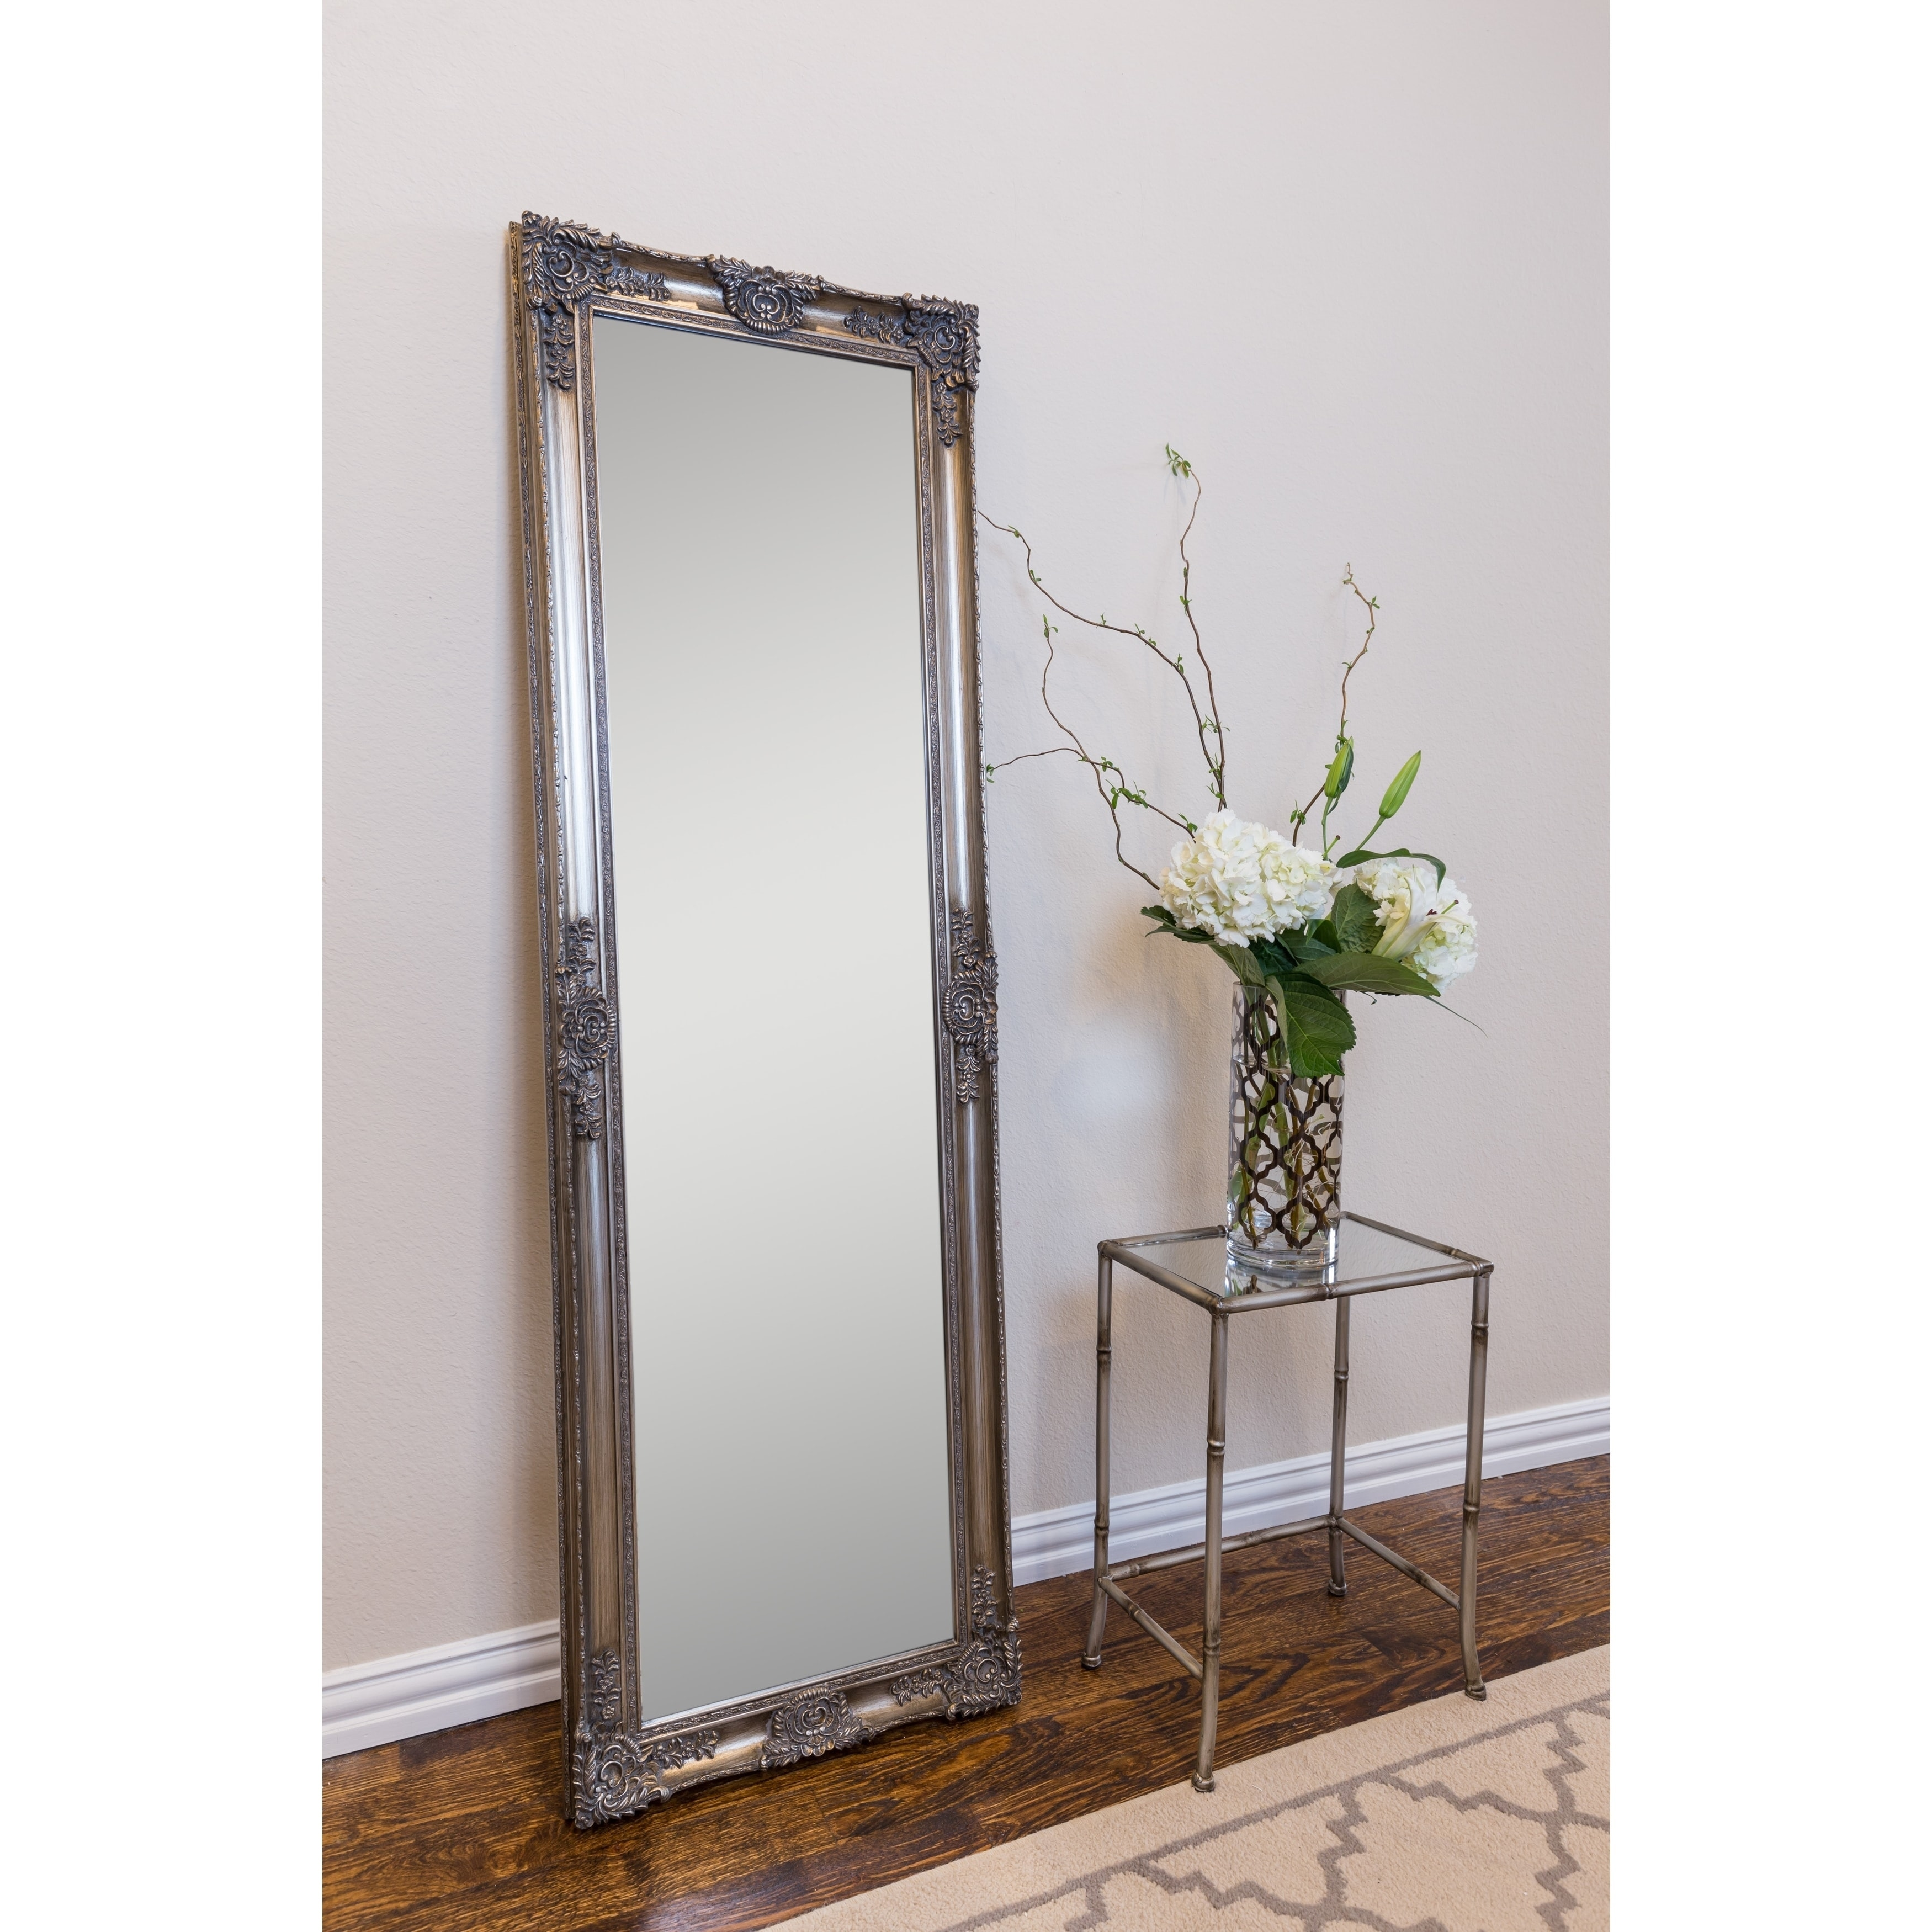 Mayfair Belle Full Length Wall Mirror - Free Shipping Today ...